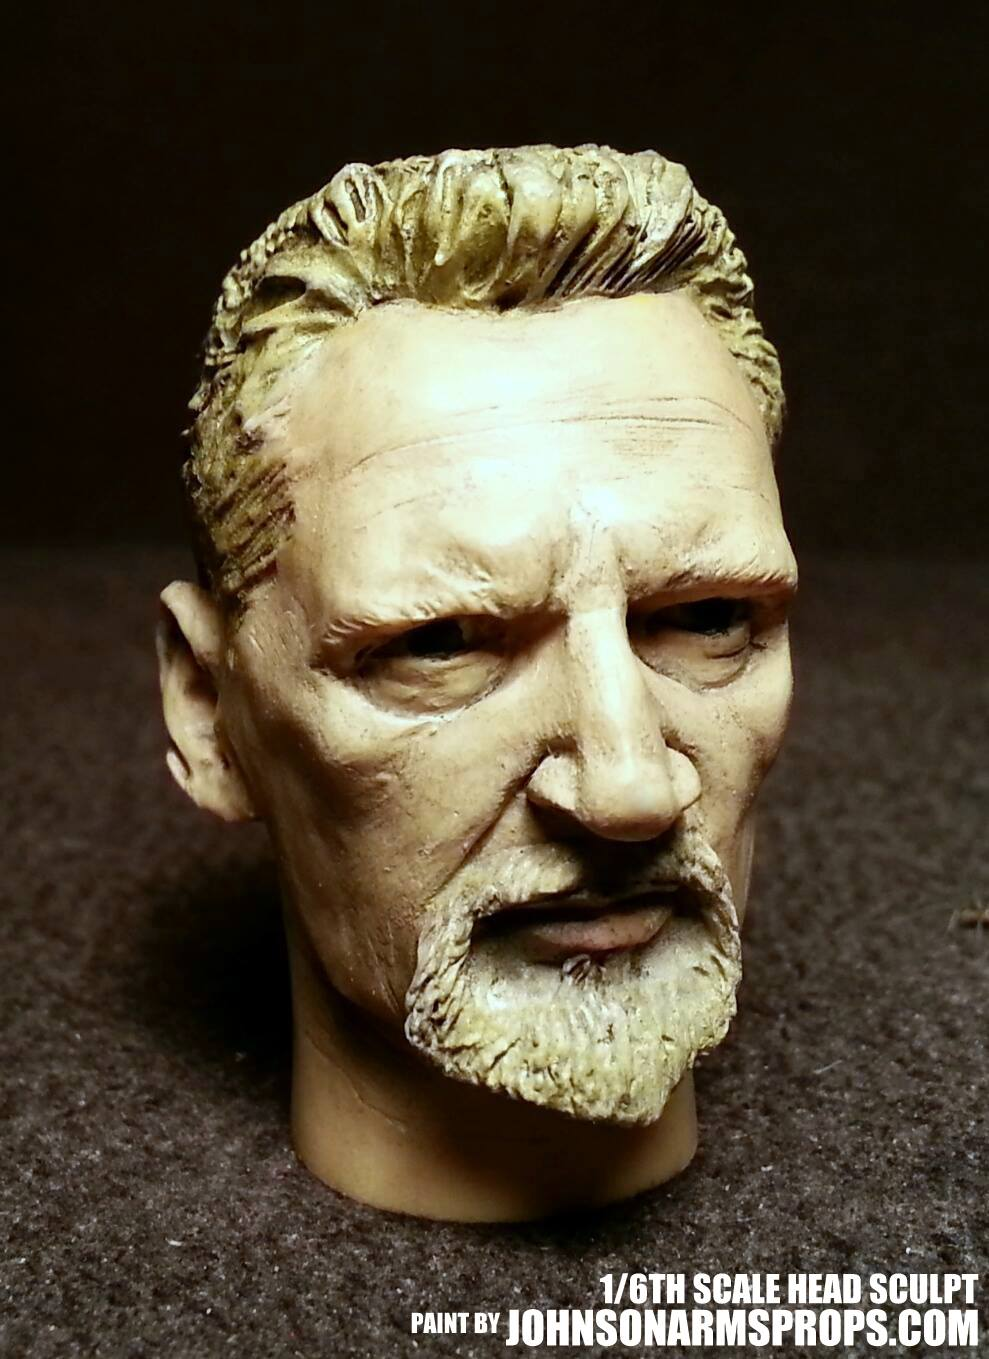 Liam Neeson 1/6th Scale Sculpt Paintjob by JohnsonArms